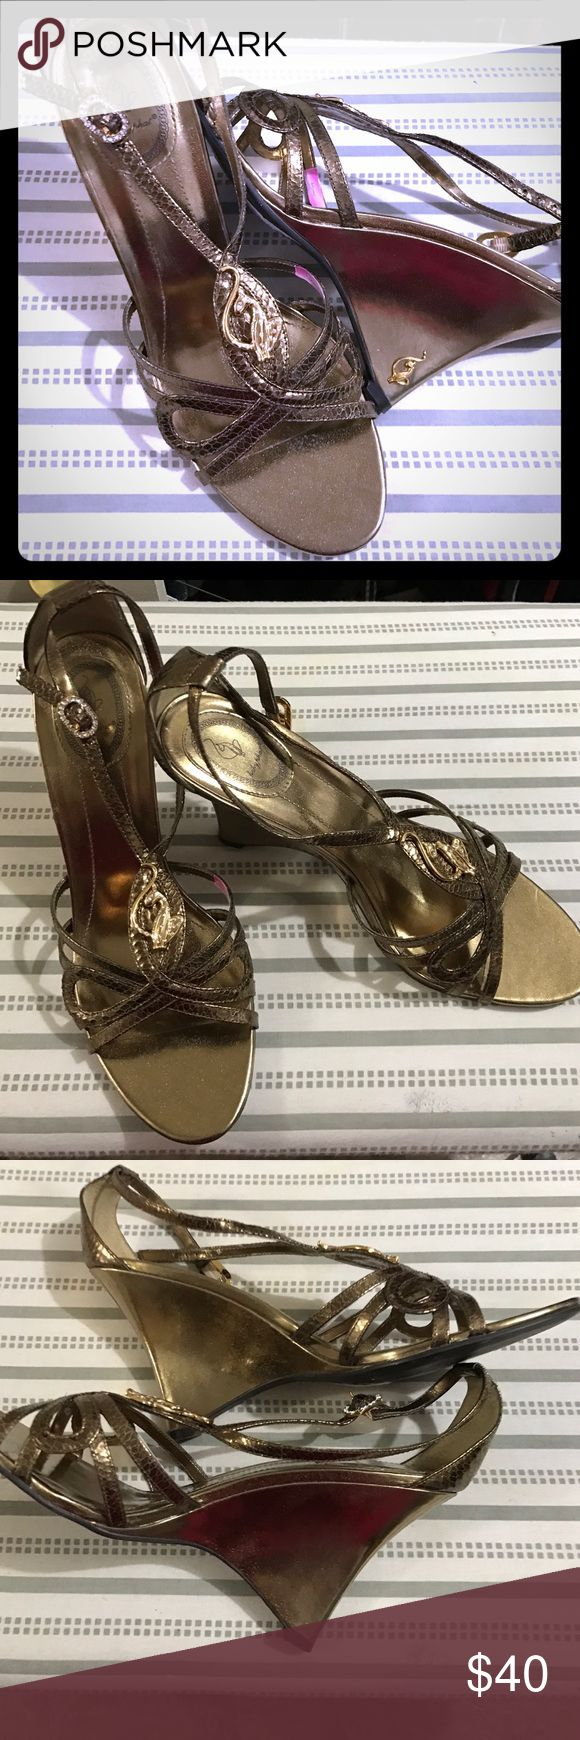 Wedges Baby phat bronze wedges with so much detail that you'll definitely be pleased. Never worn! Baby Phat Shoes Wedges